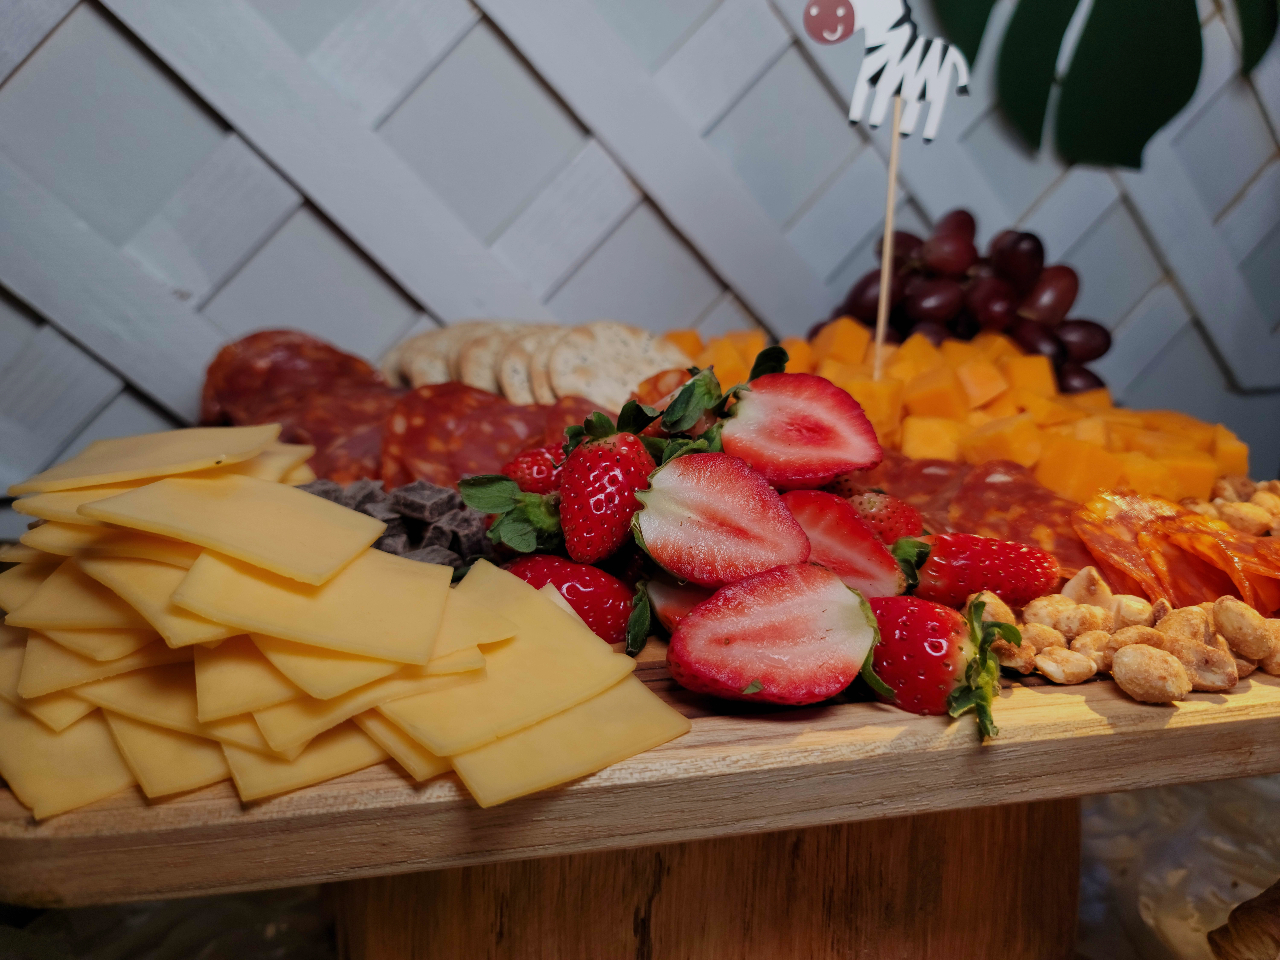 A catering table with a cheese platter and some fruits decorated with a foam zebra